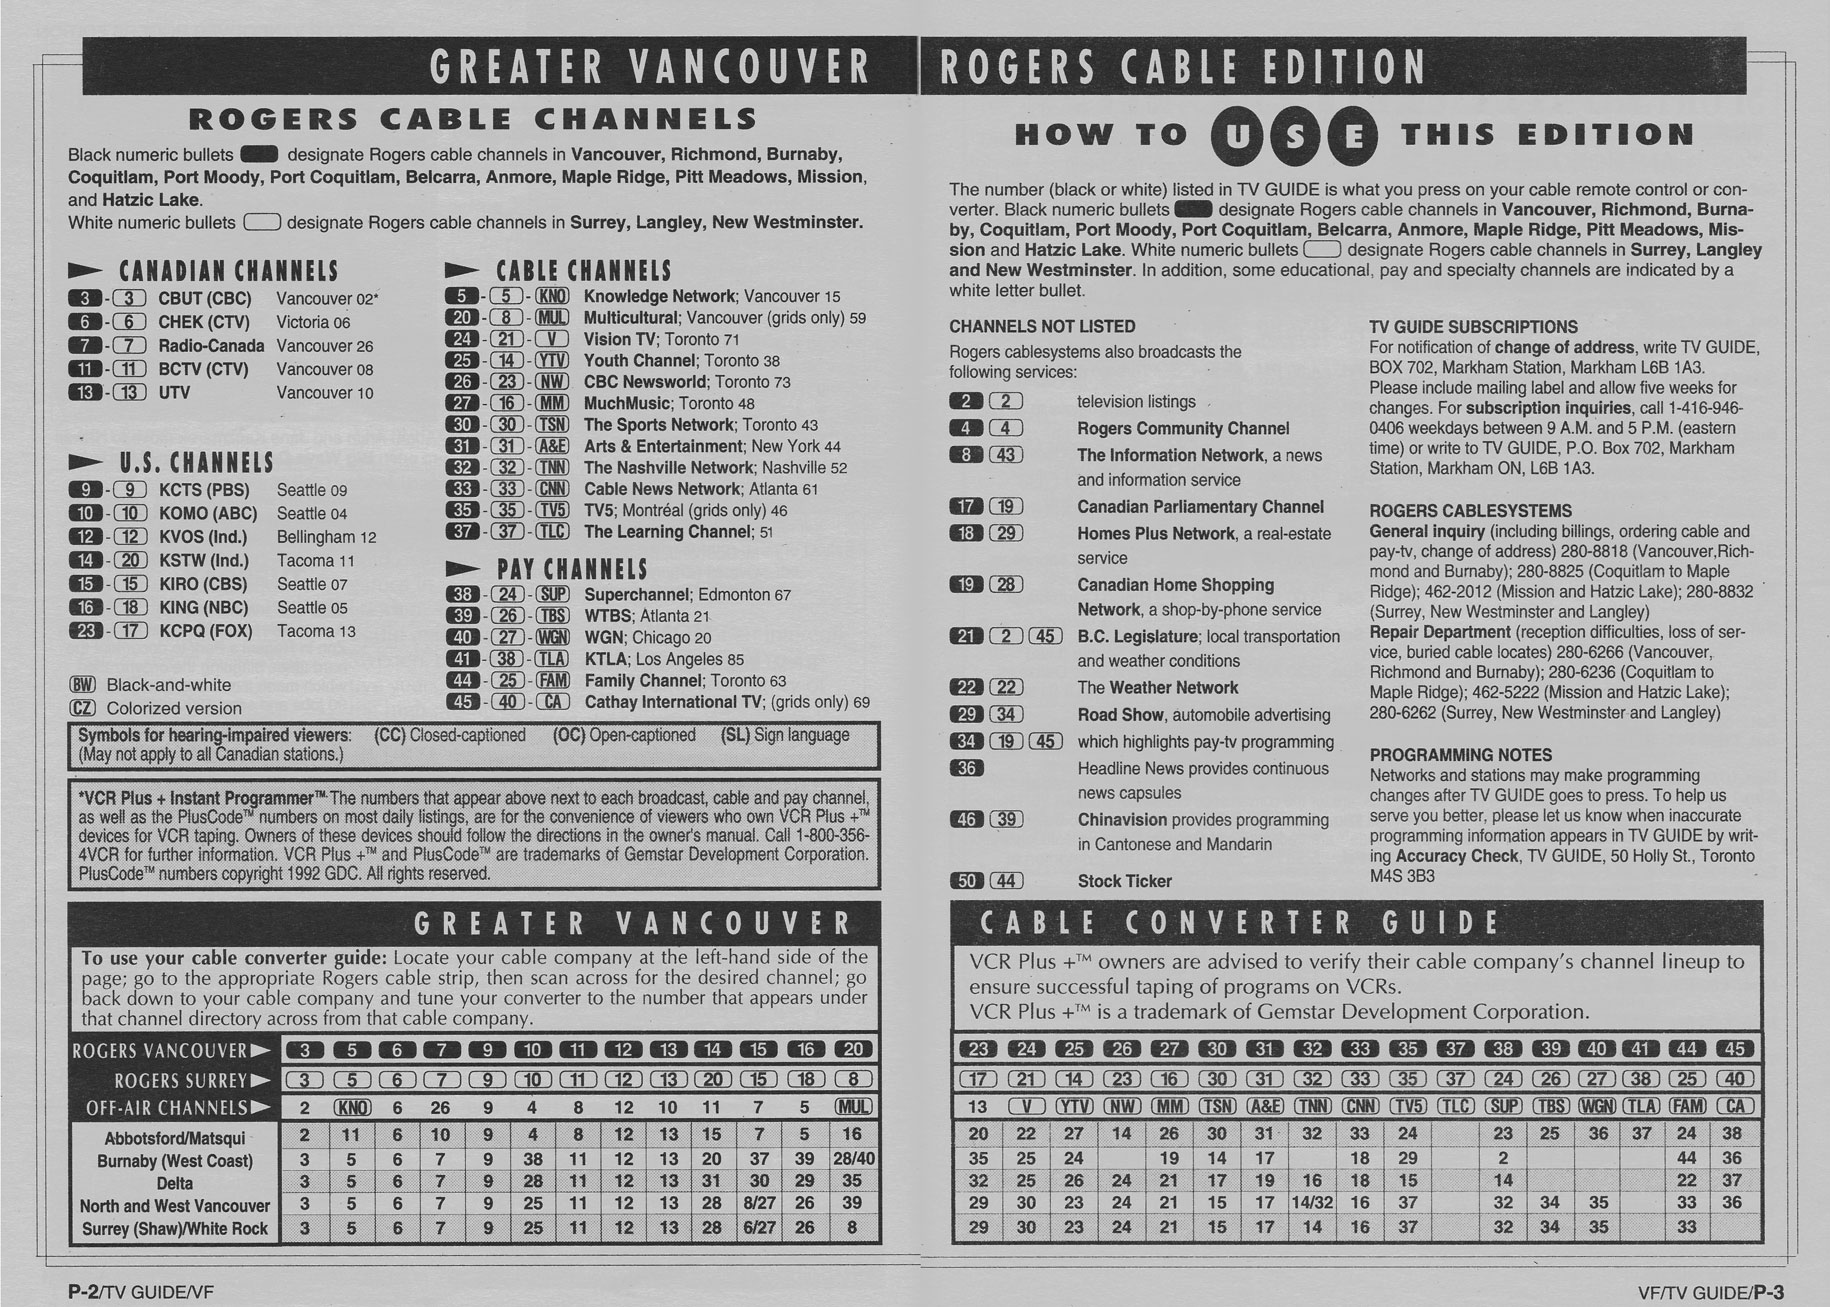 TV Guide August 7 1993 Vancouver Rogers Cable Edition Cable Converter Guide